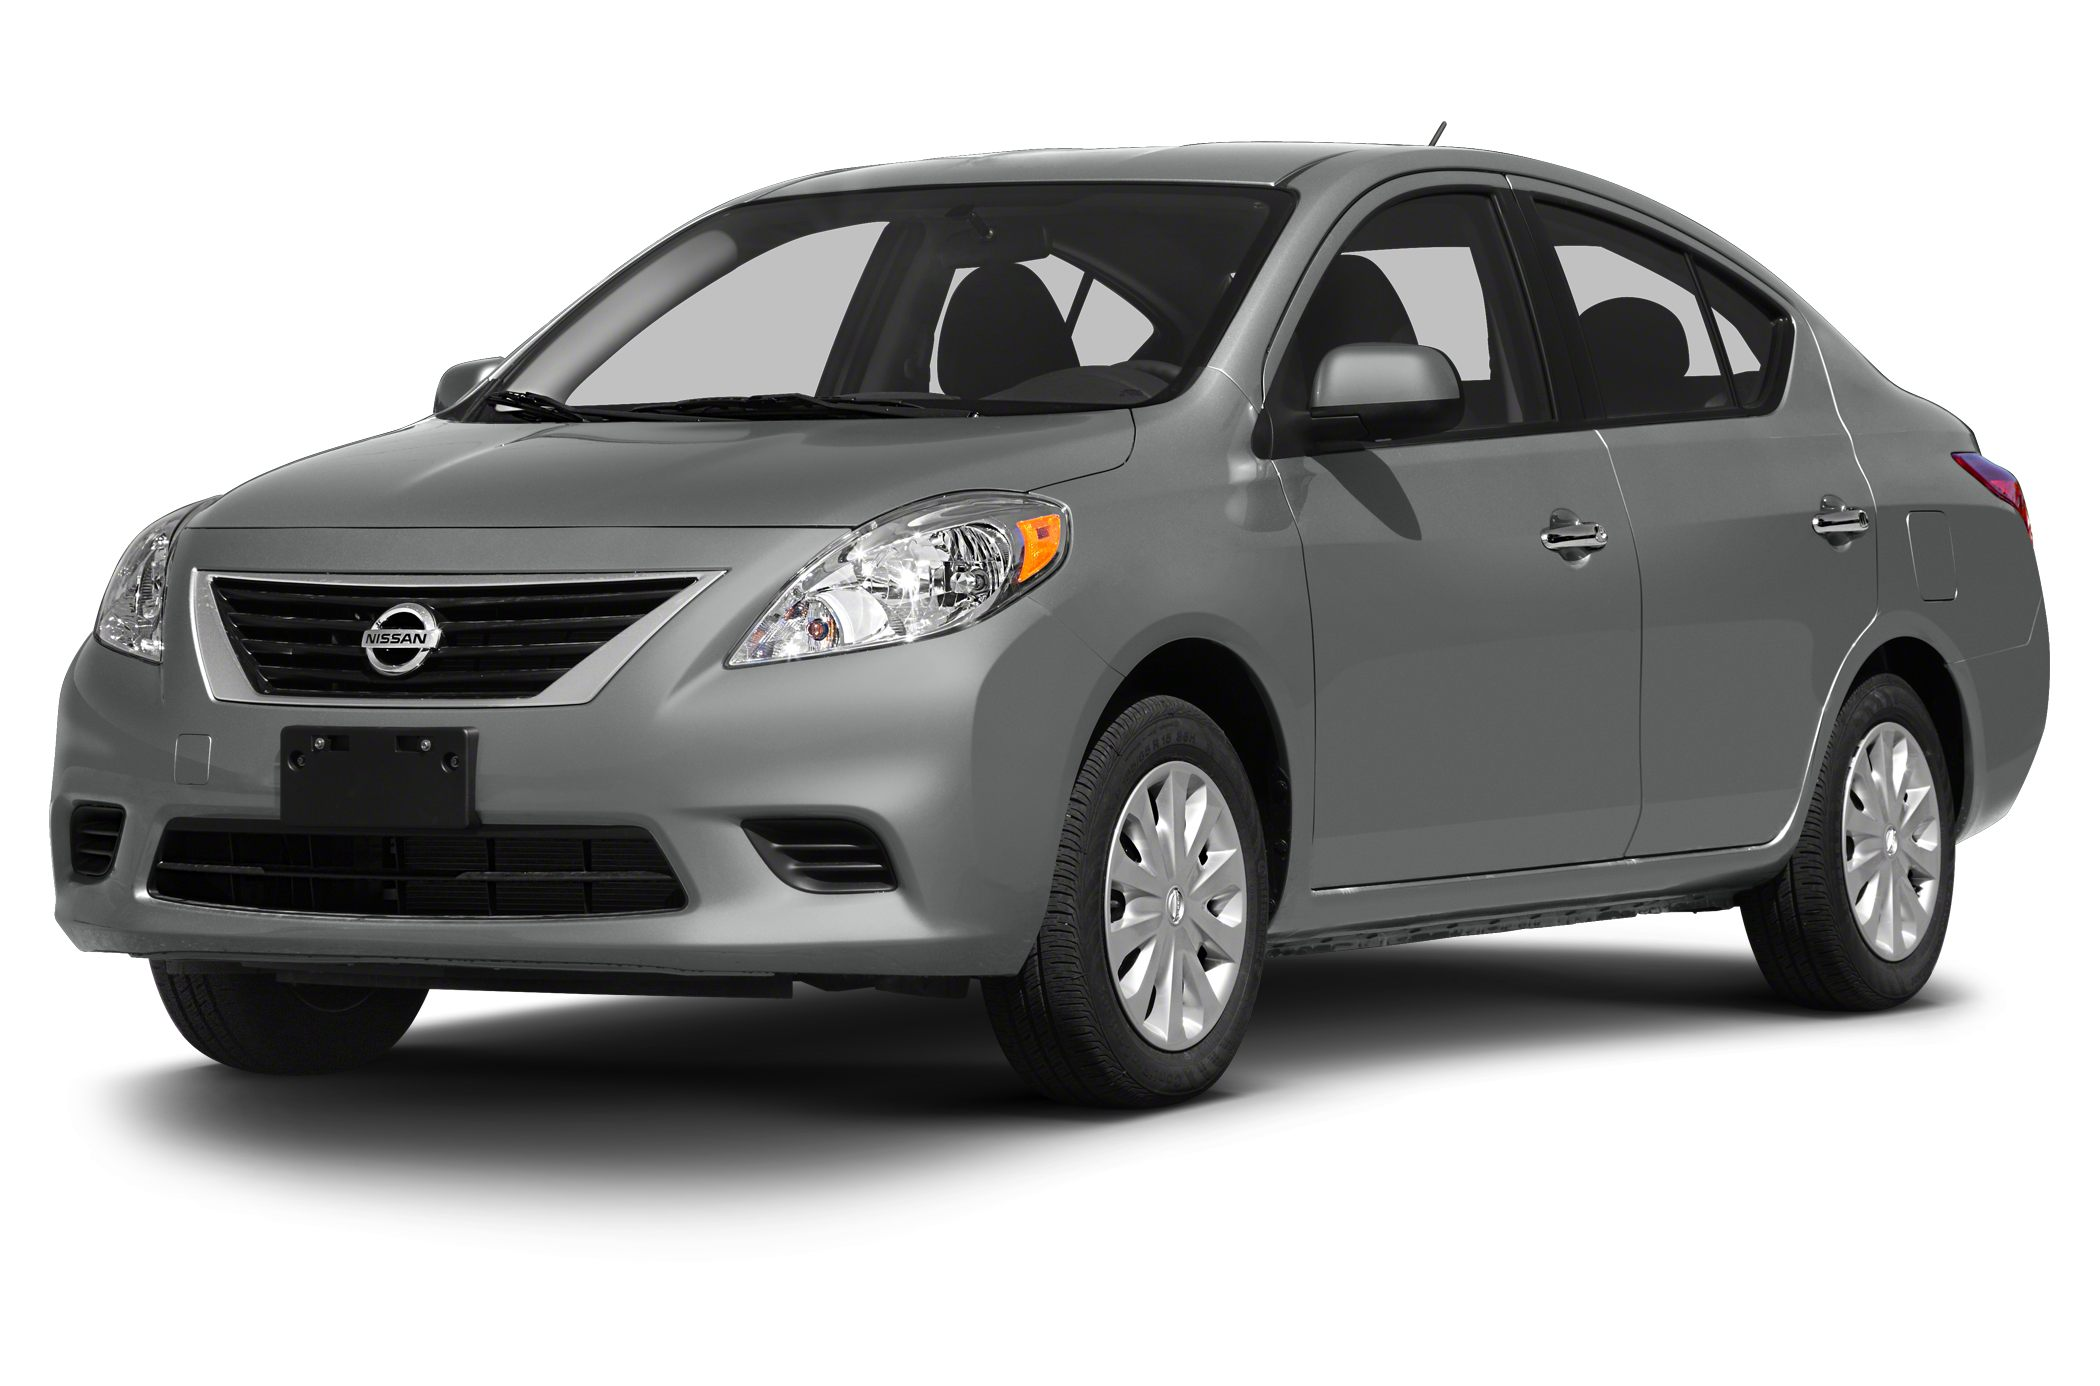 2013 Nissan Versa 1.6 SV Sedan for sale in Ventura for $9,994 with 53,154 miles